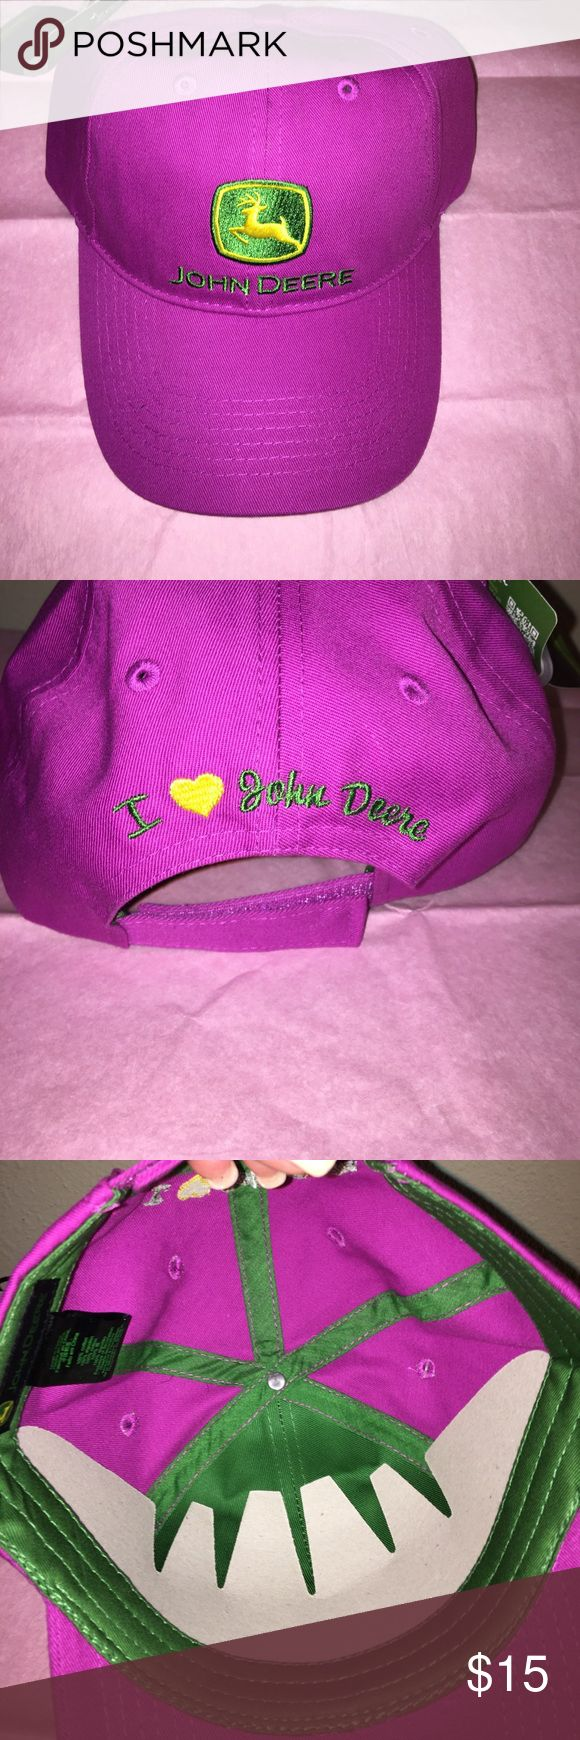 John Deere Hat Purple John Deere hat with tags. John Deere Accessories Hats